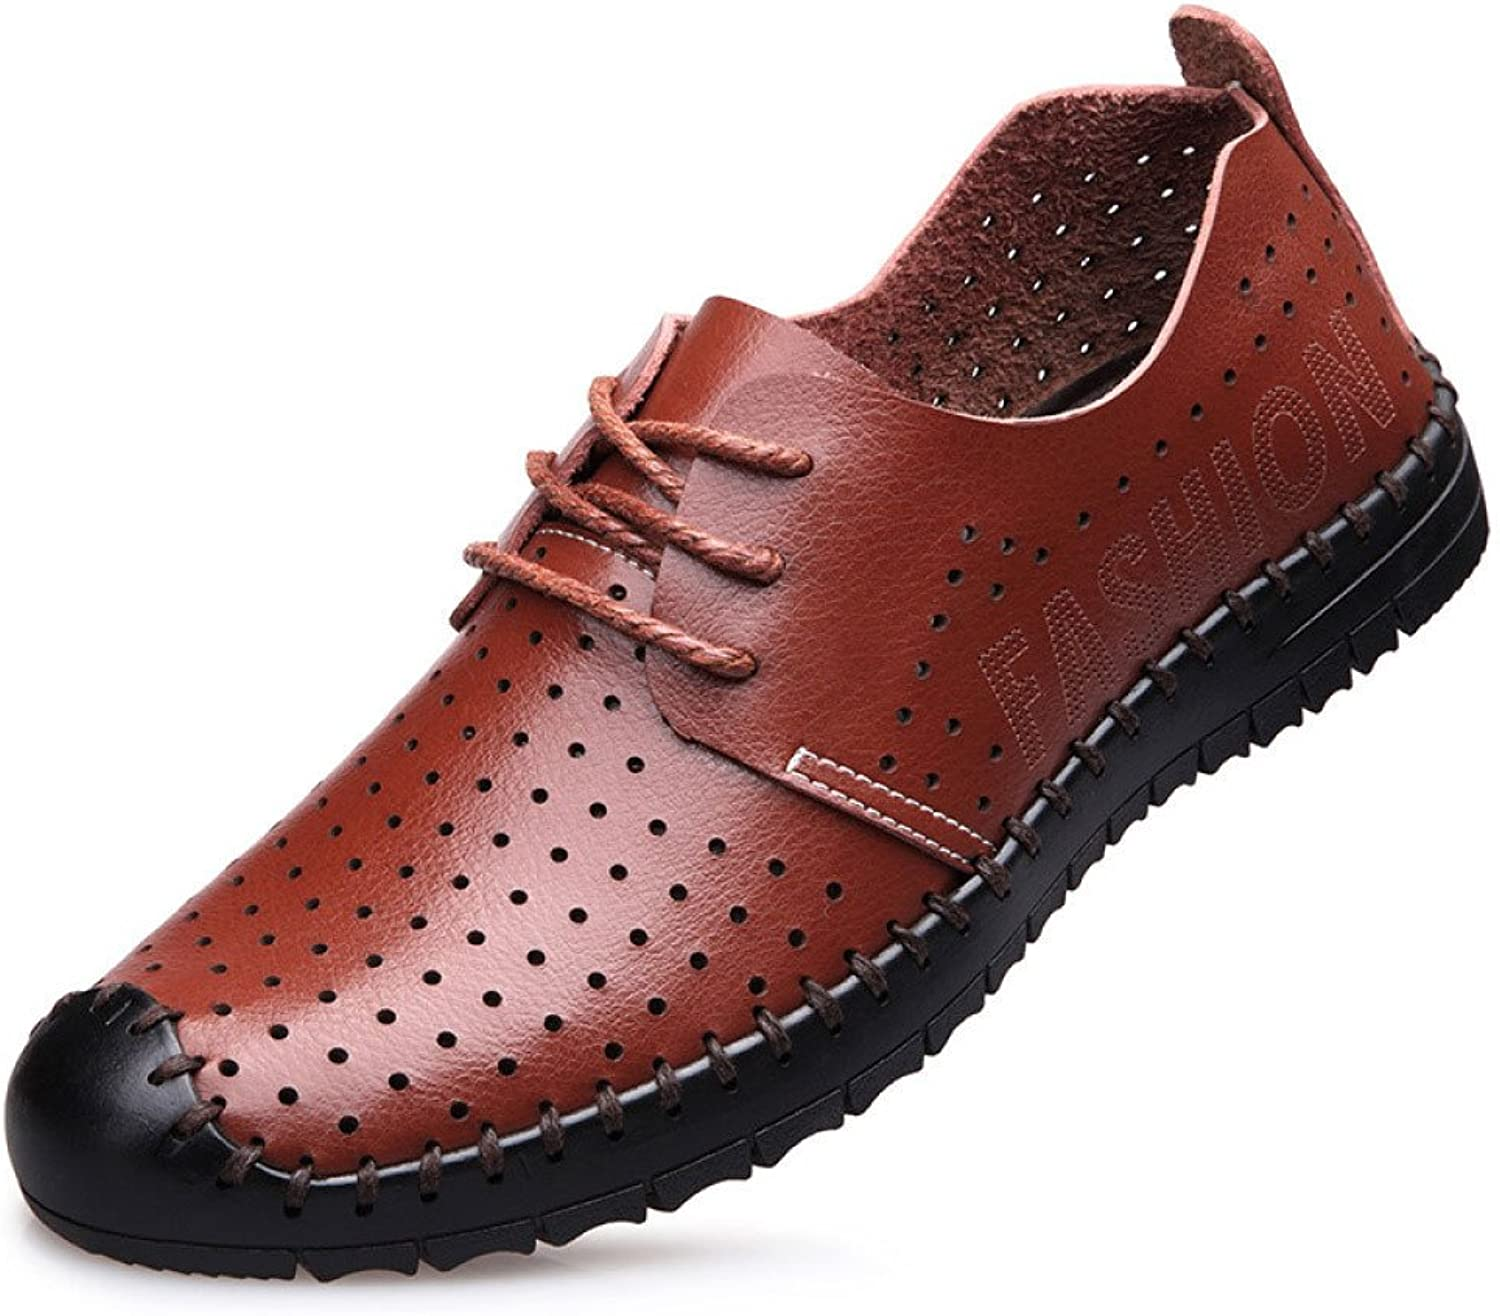 Men's shoes Crash-Proof Casual Hollow Stylish Breathable Lace-up